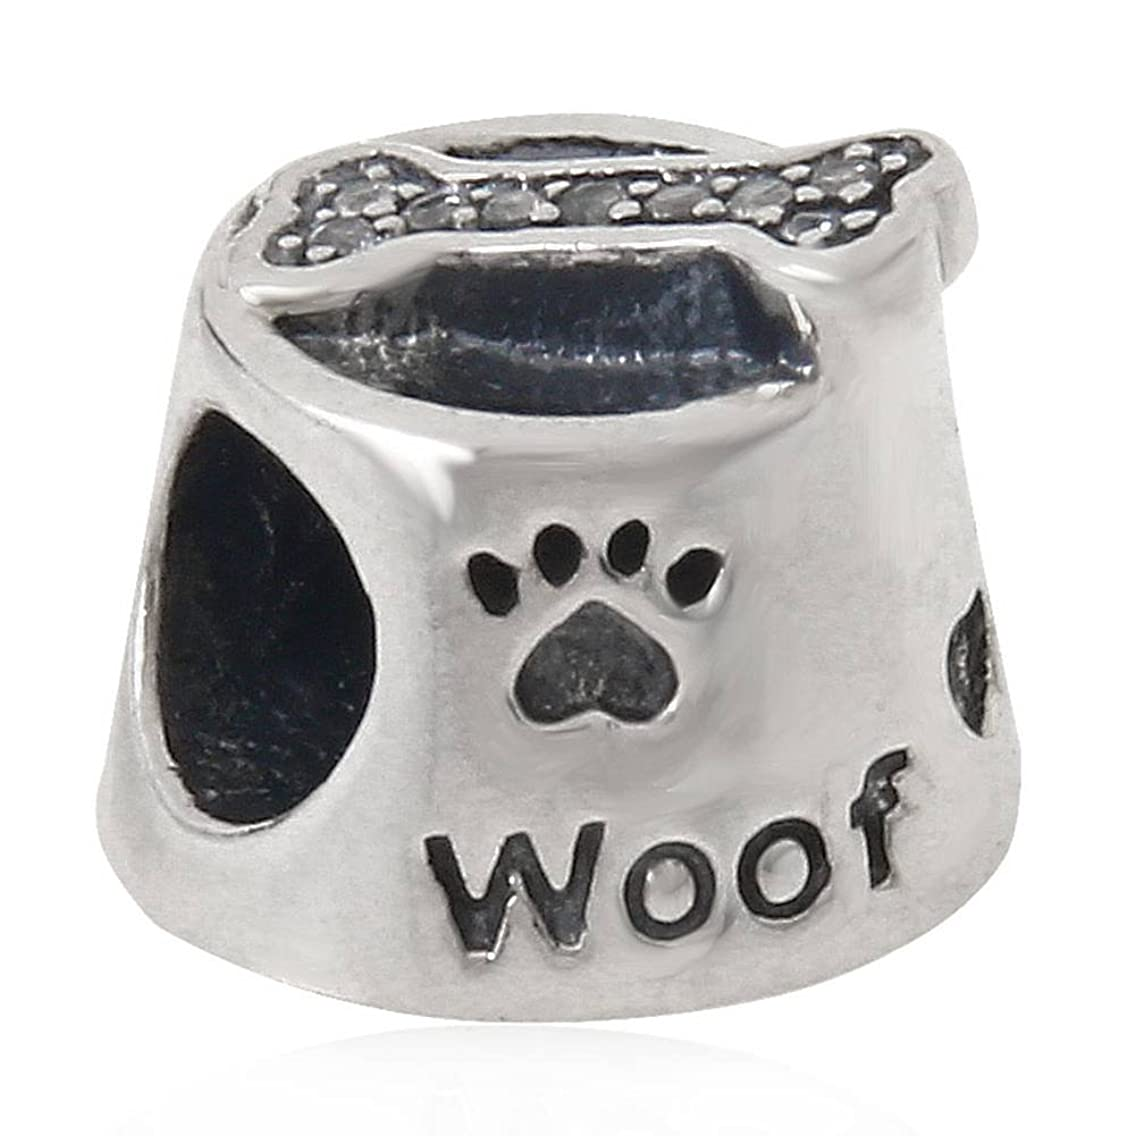 The Dog Bowl & Bone Charm Animals Beads fit for DIY Charms Bracelets